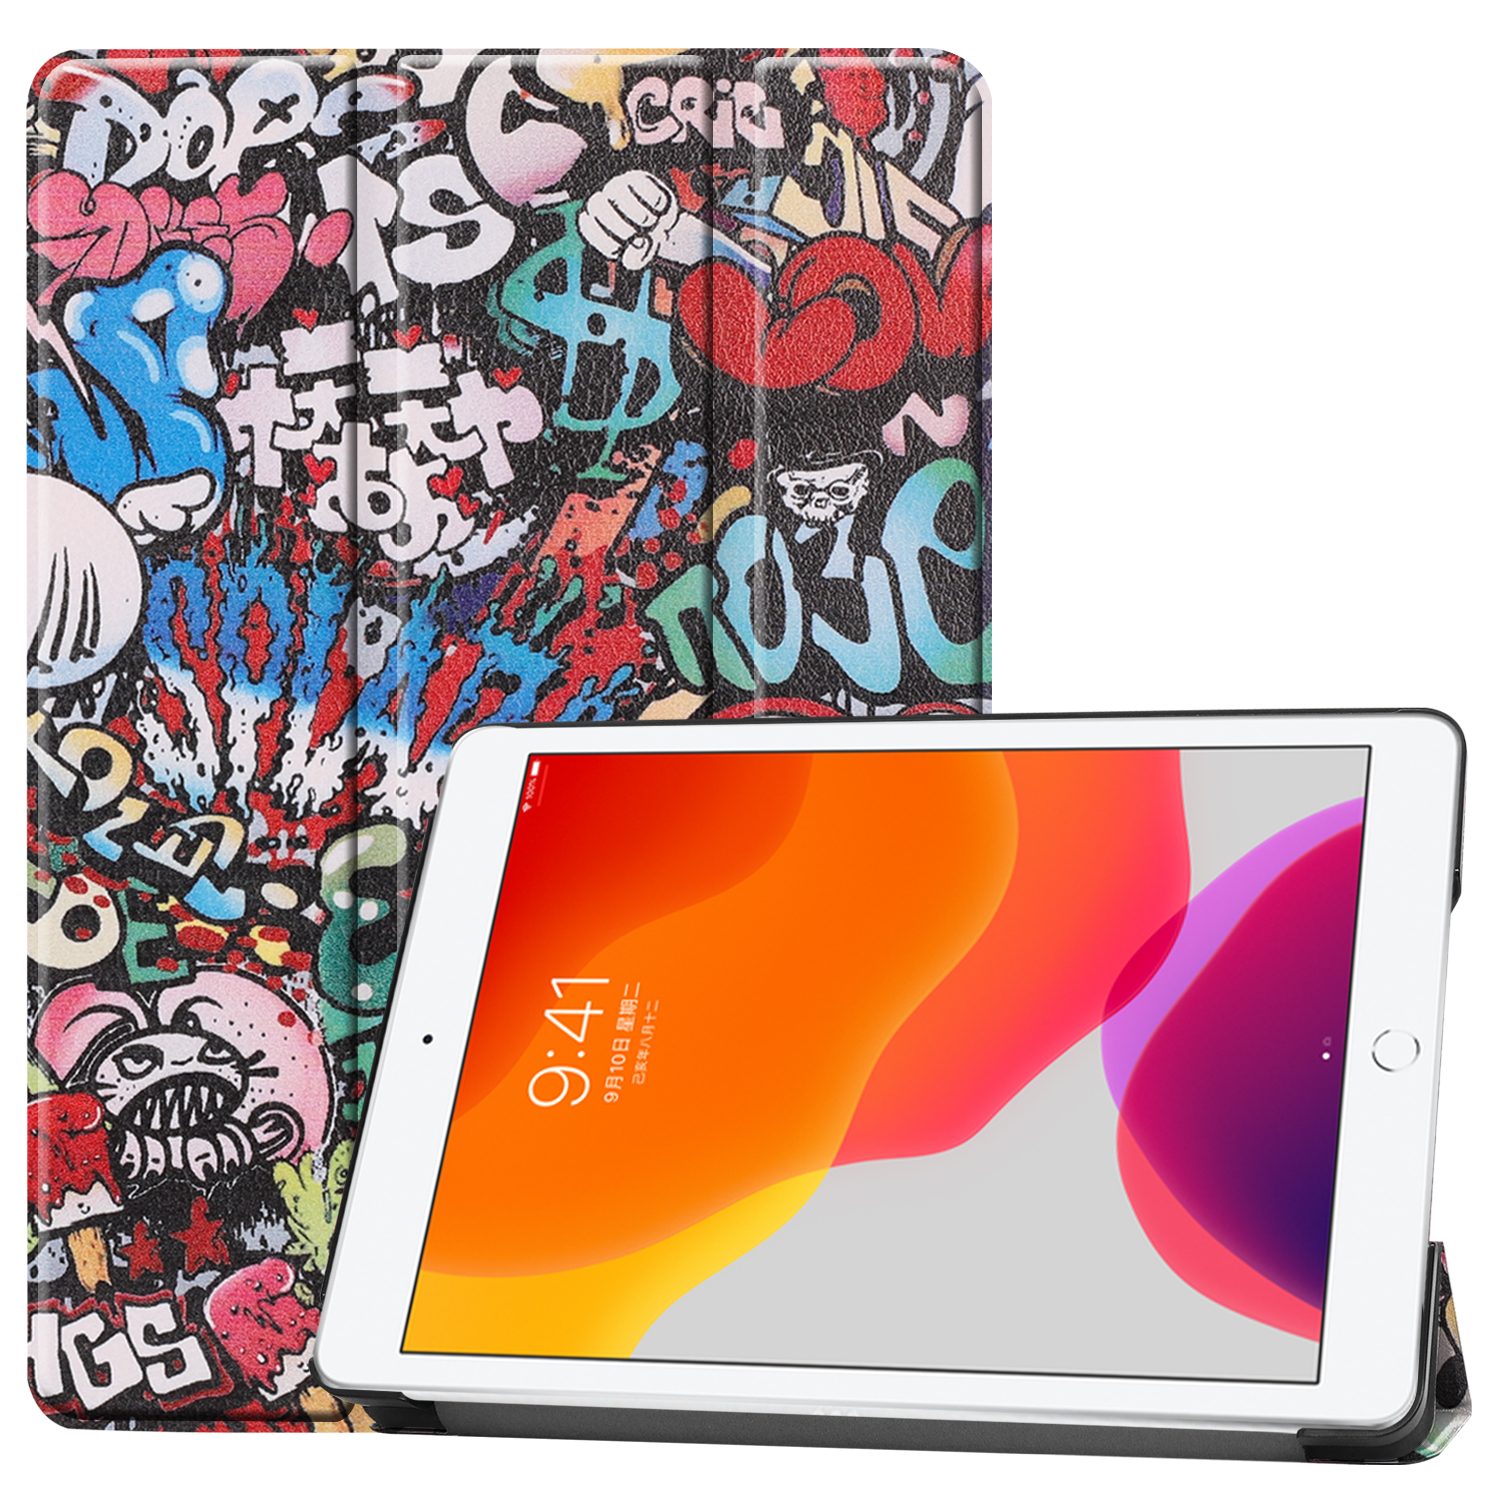 Graffiti White Case For Apple iPad 10 2 2020 iPad 8 8th Generation A2270 A2428 A2429 Leather Magnetic